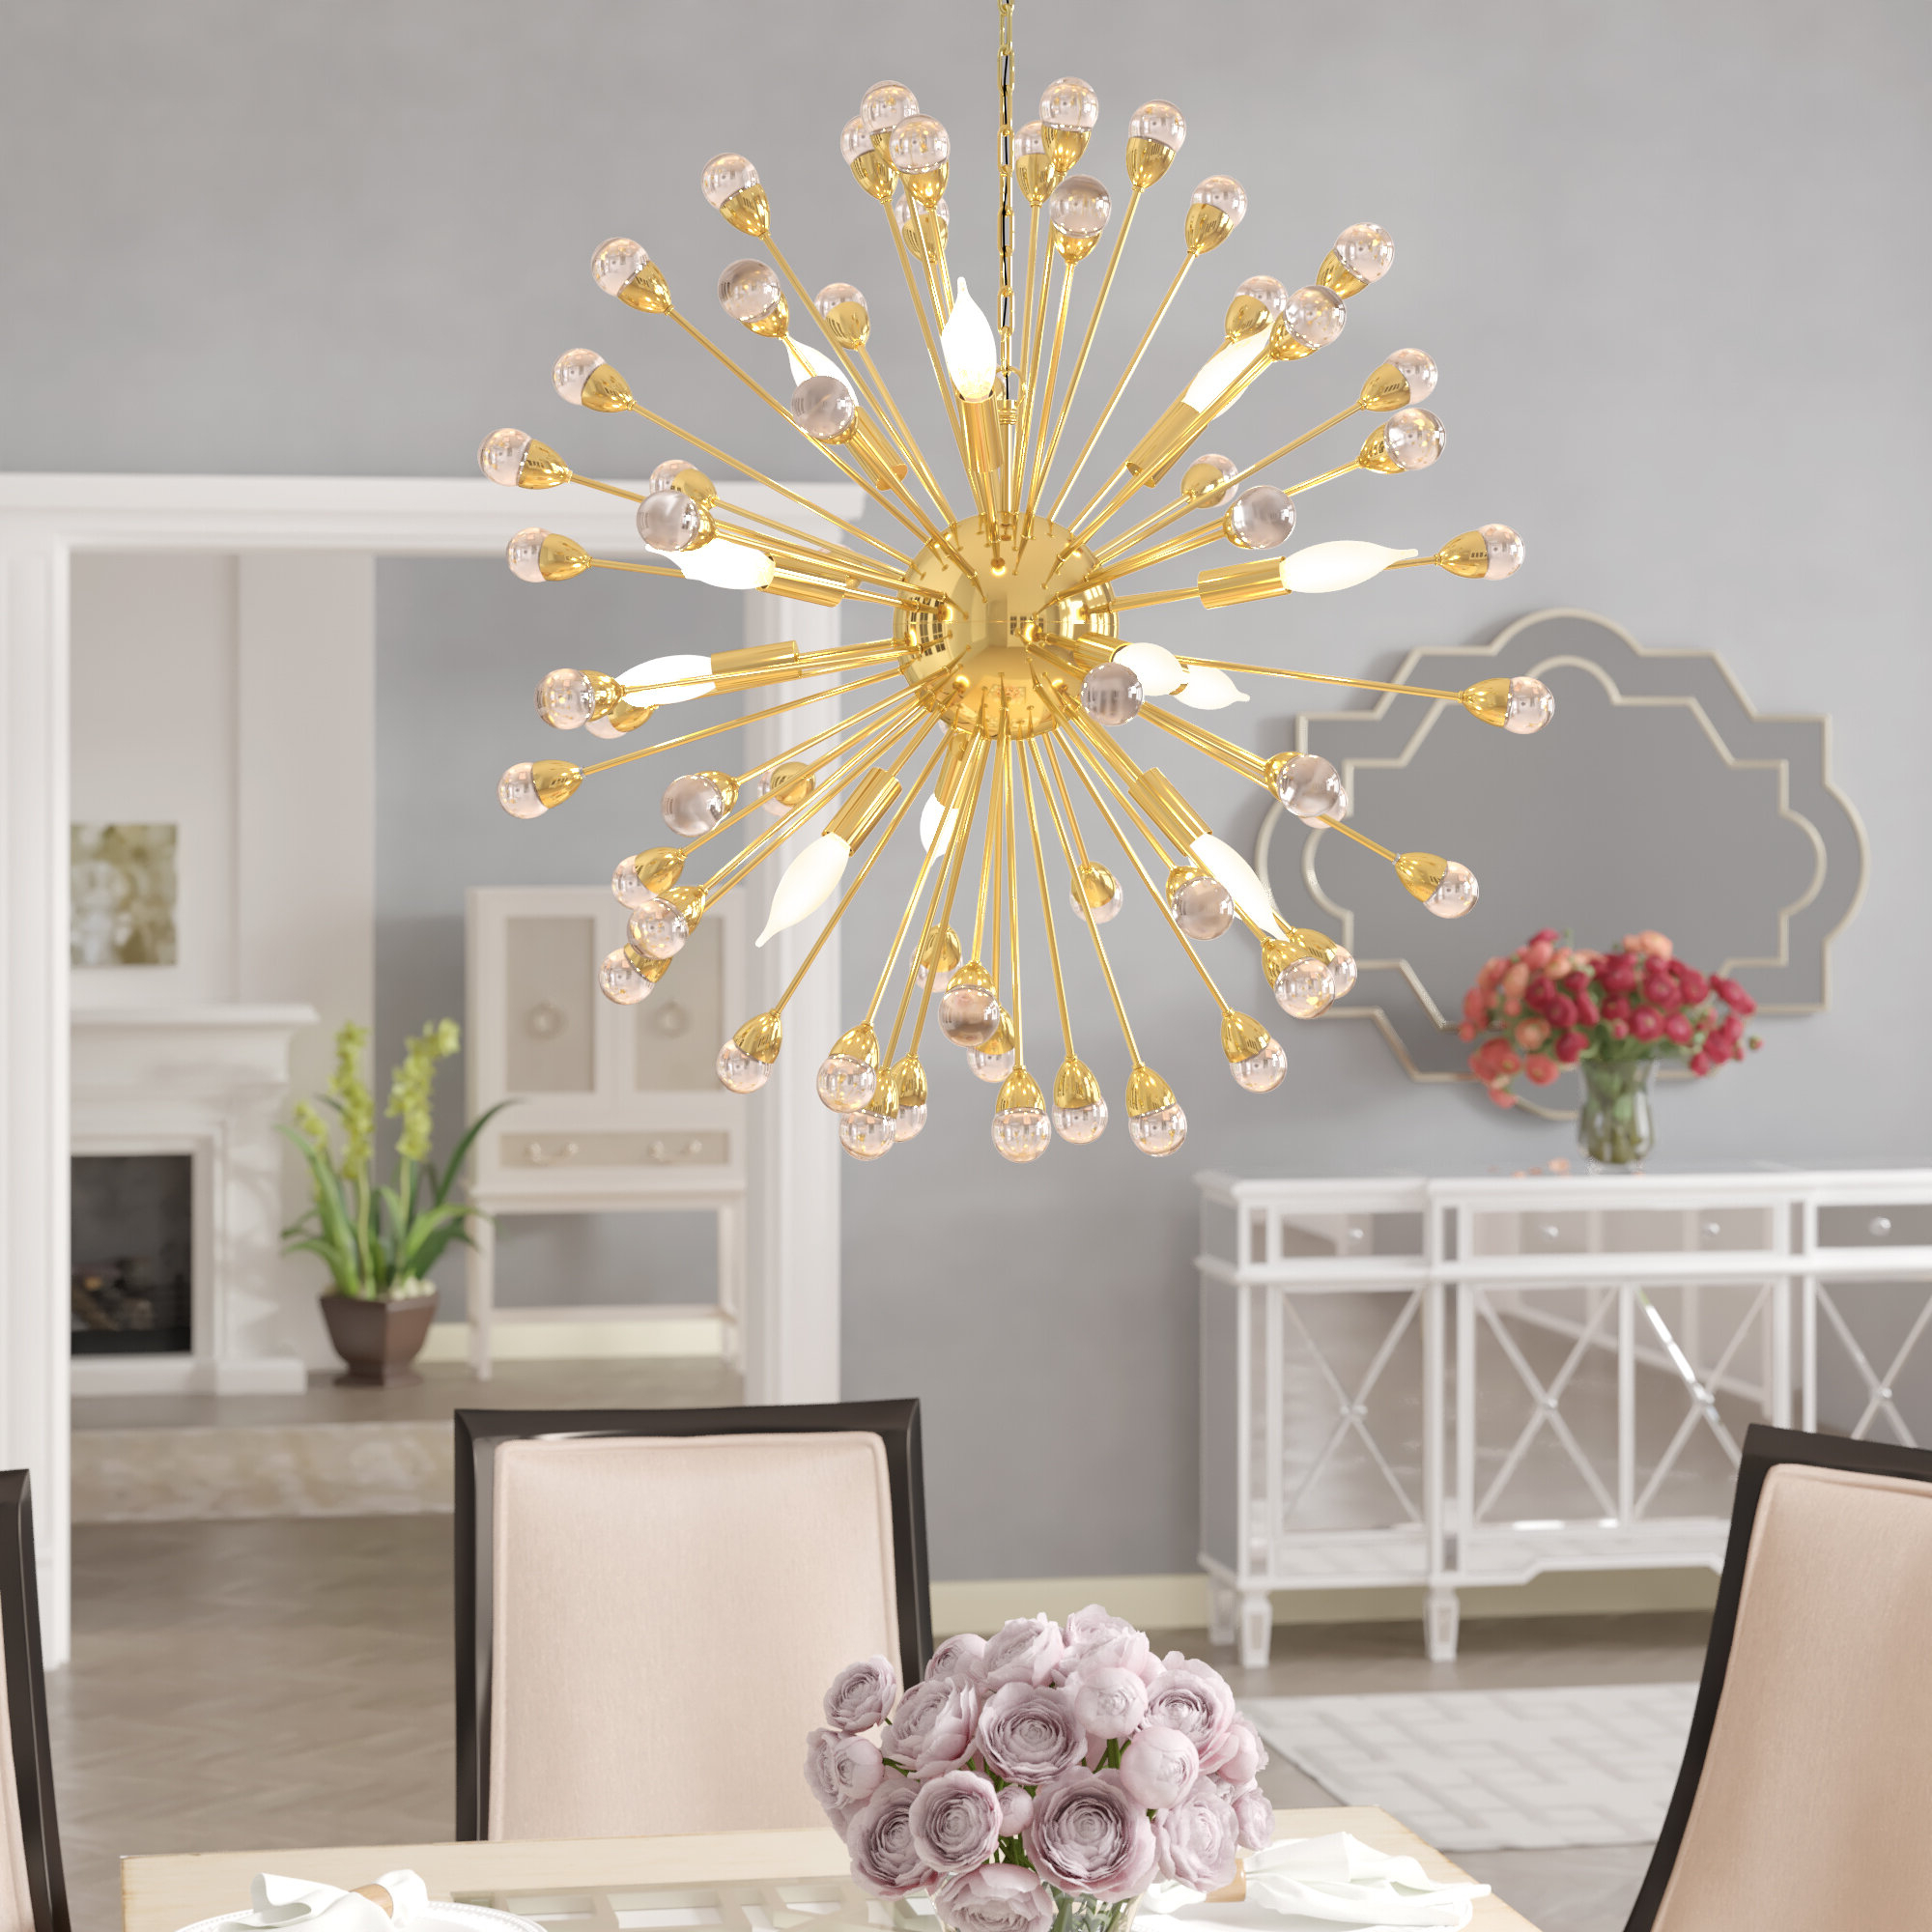 Kucharski 12 Light Sputnik Chandelier In Preferred Nelly 12 Light Sputnik Chandeliers (View 4 of 20)